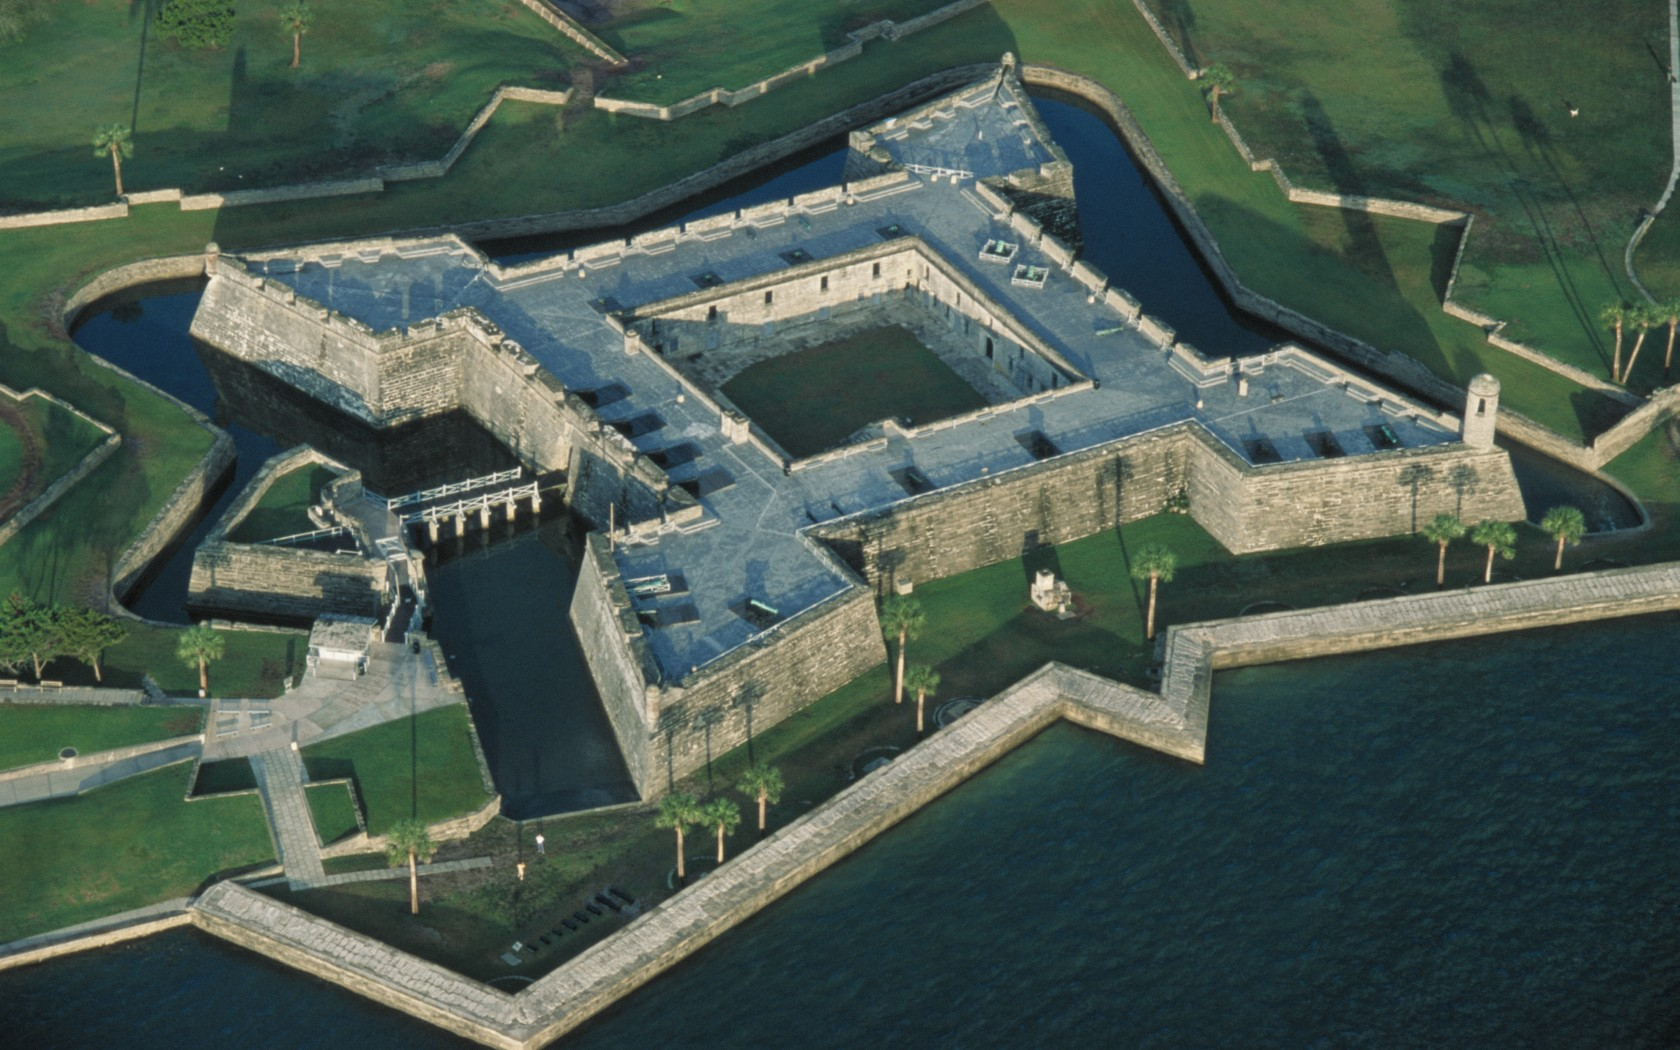 Visitors can tour this reconstructed fort, which contains many elements of the original fort constructed by the Spanish in the 17th century.